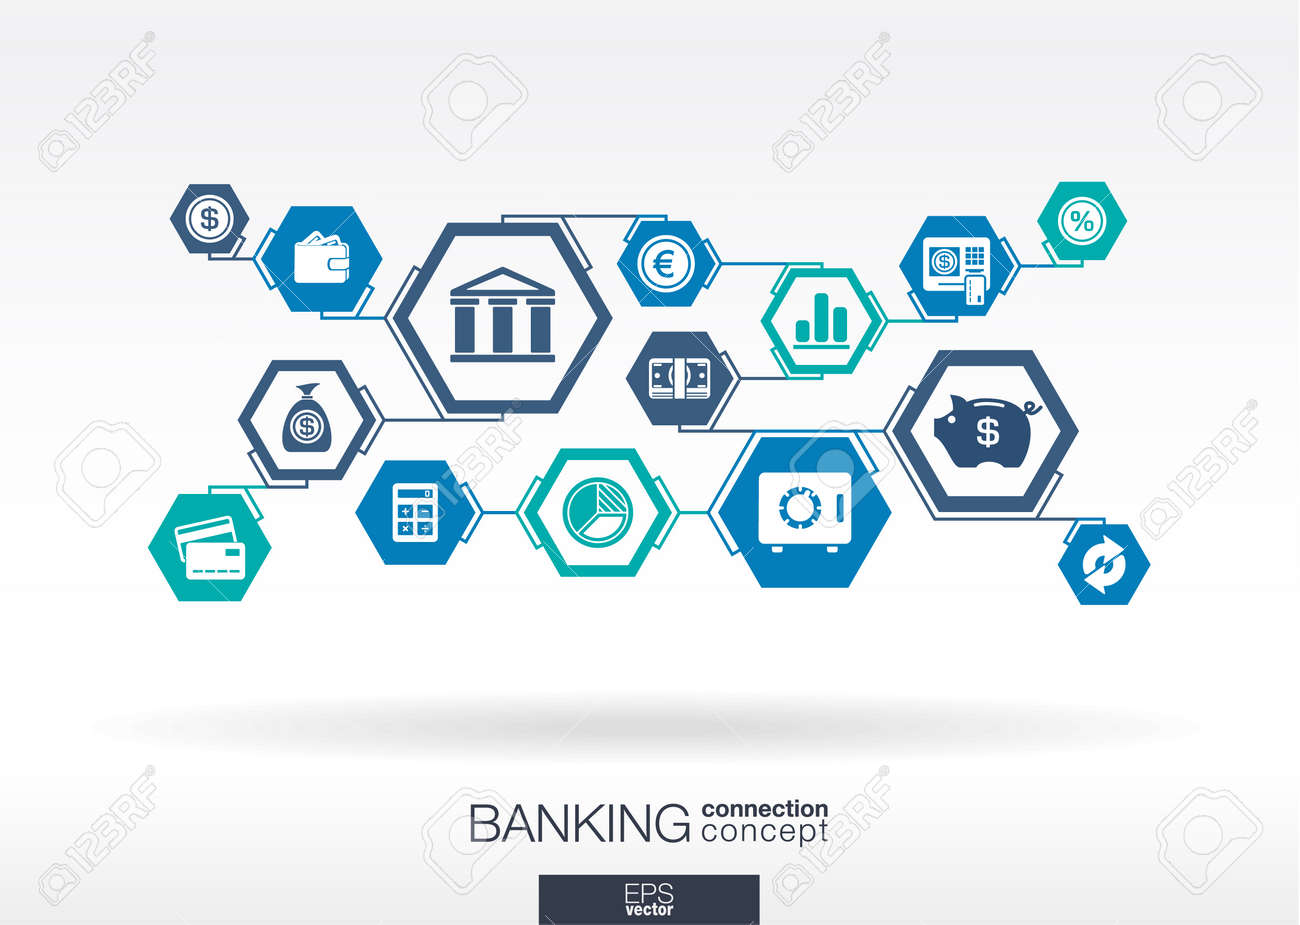 Banking network. Hexagon abstract background with lines, polygons, and integrate flat icons. Connected symbols for money, card, bank, business and finance concepts. Vector interactive illustration - 43377686